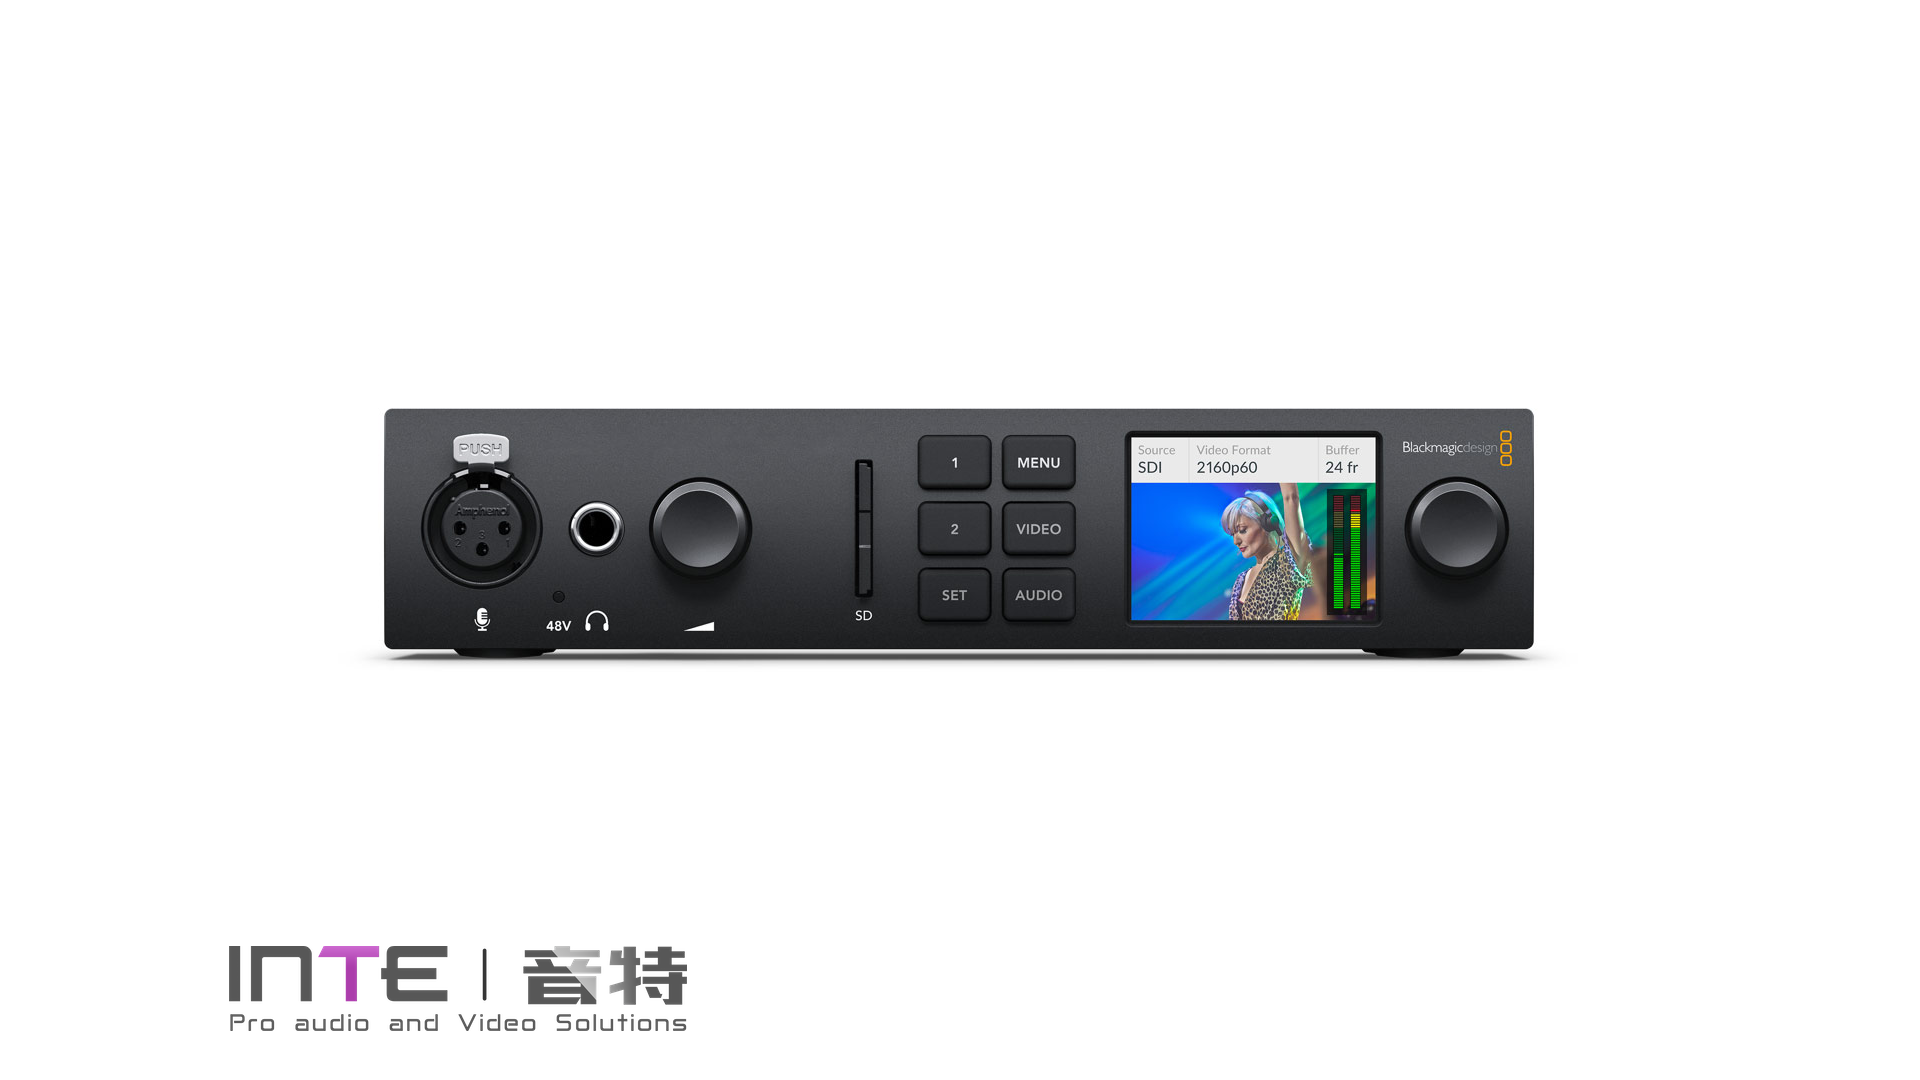 Blackmagic UltraStudio 4K Mini 雷电3采集输出